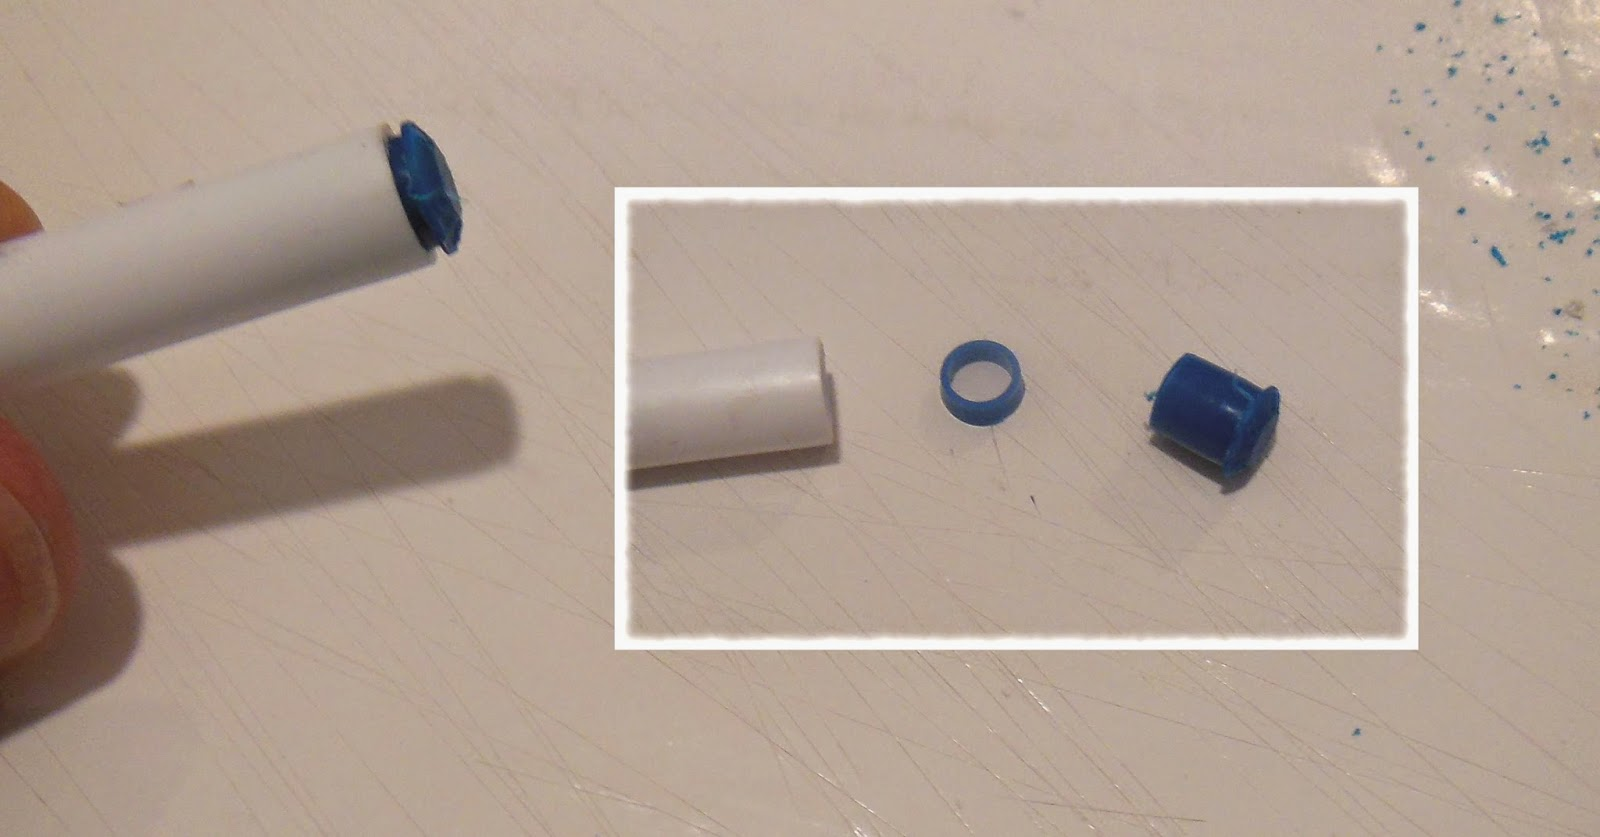 Work the blue end plug out with a knife blade.